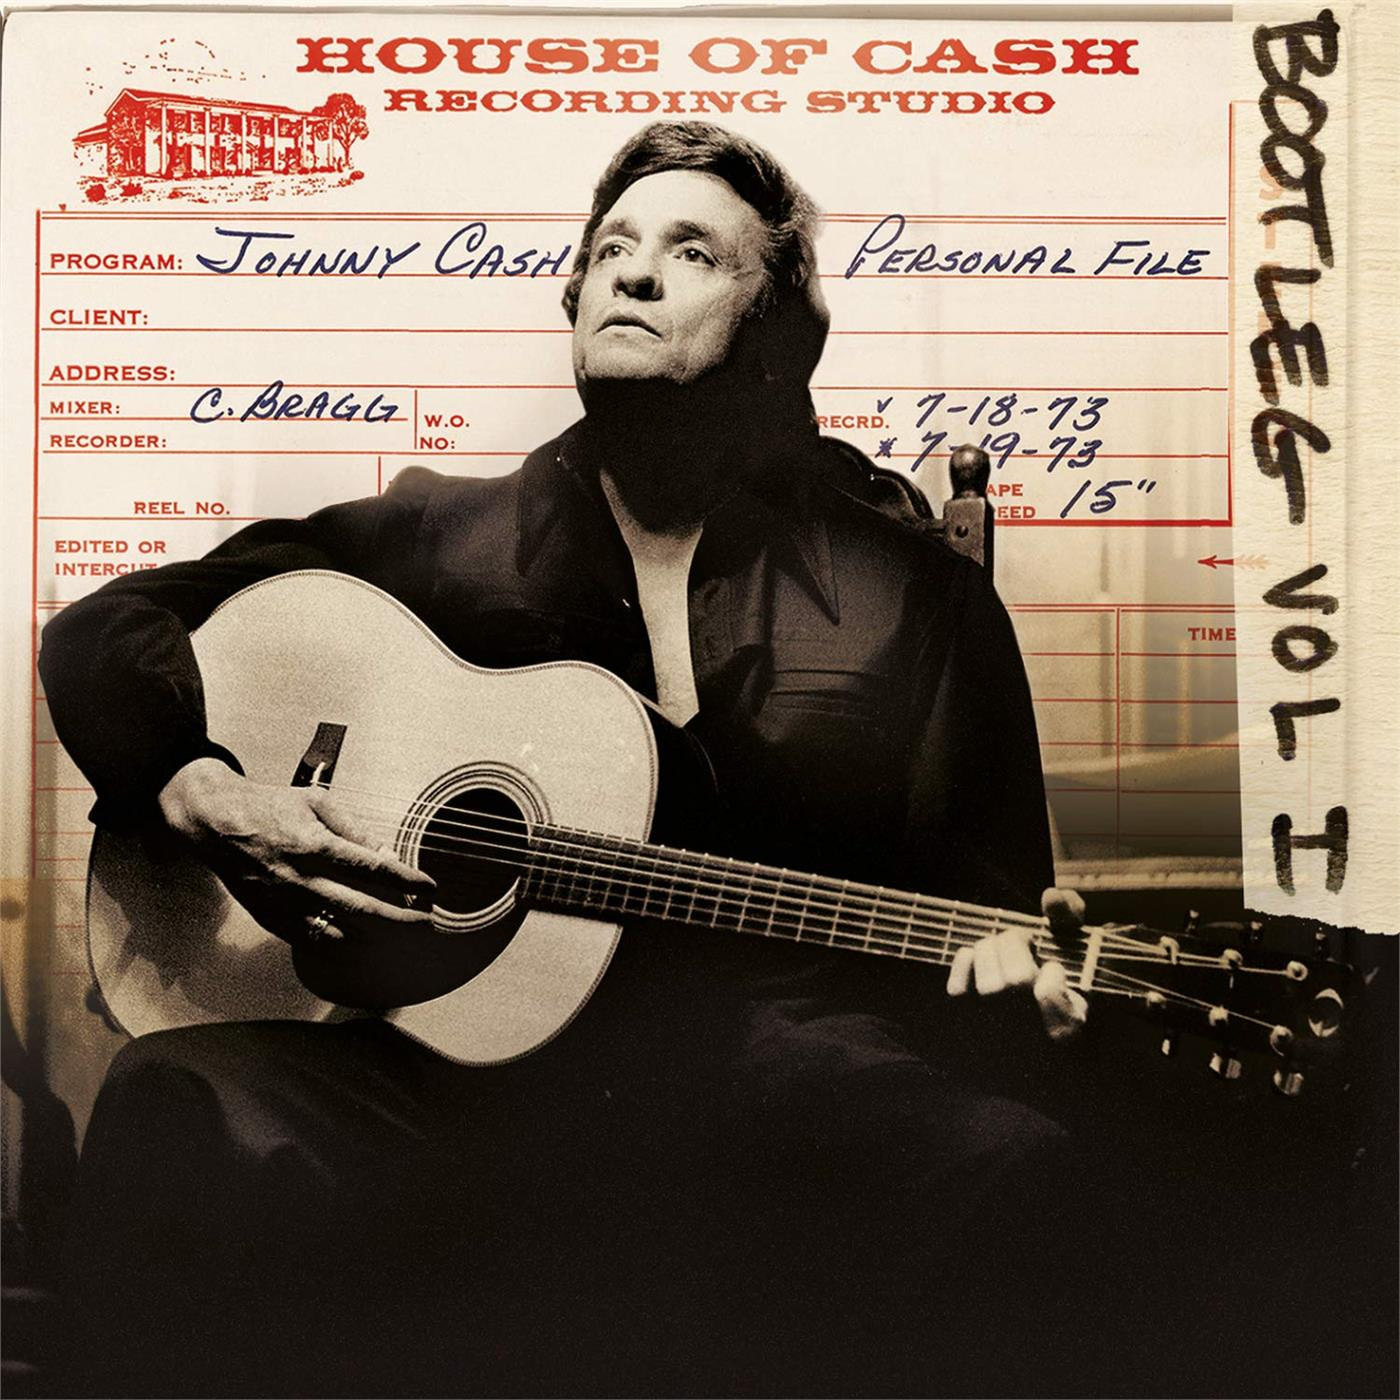 MOVLP284 Music on Vinyl  Johnny Cash Bootleg 1: Personal File (3LP)